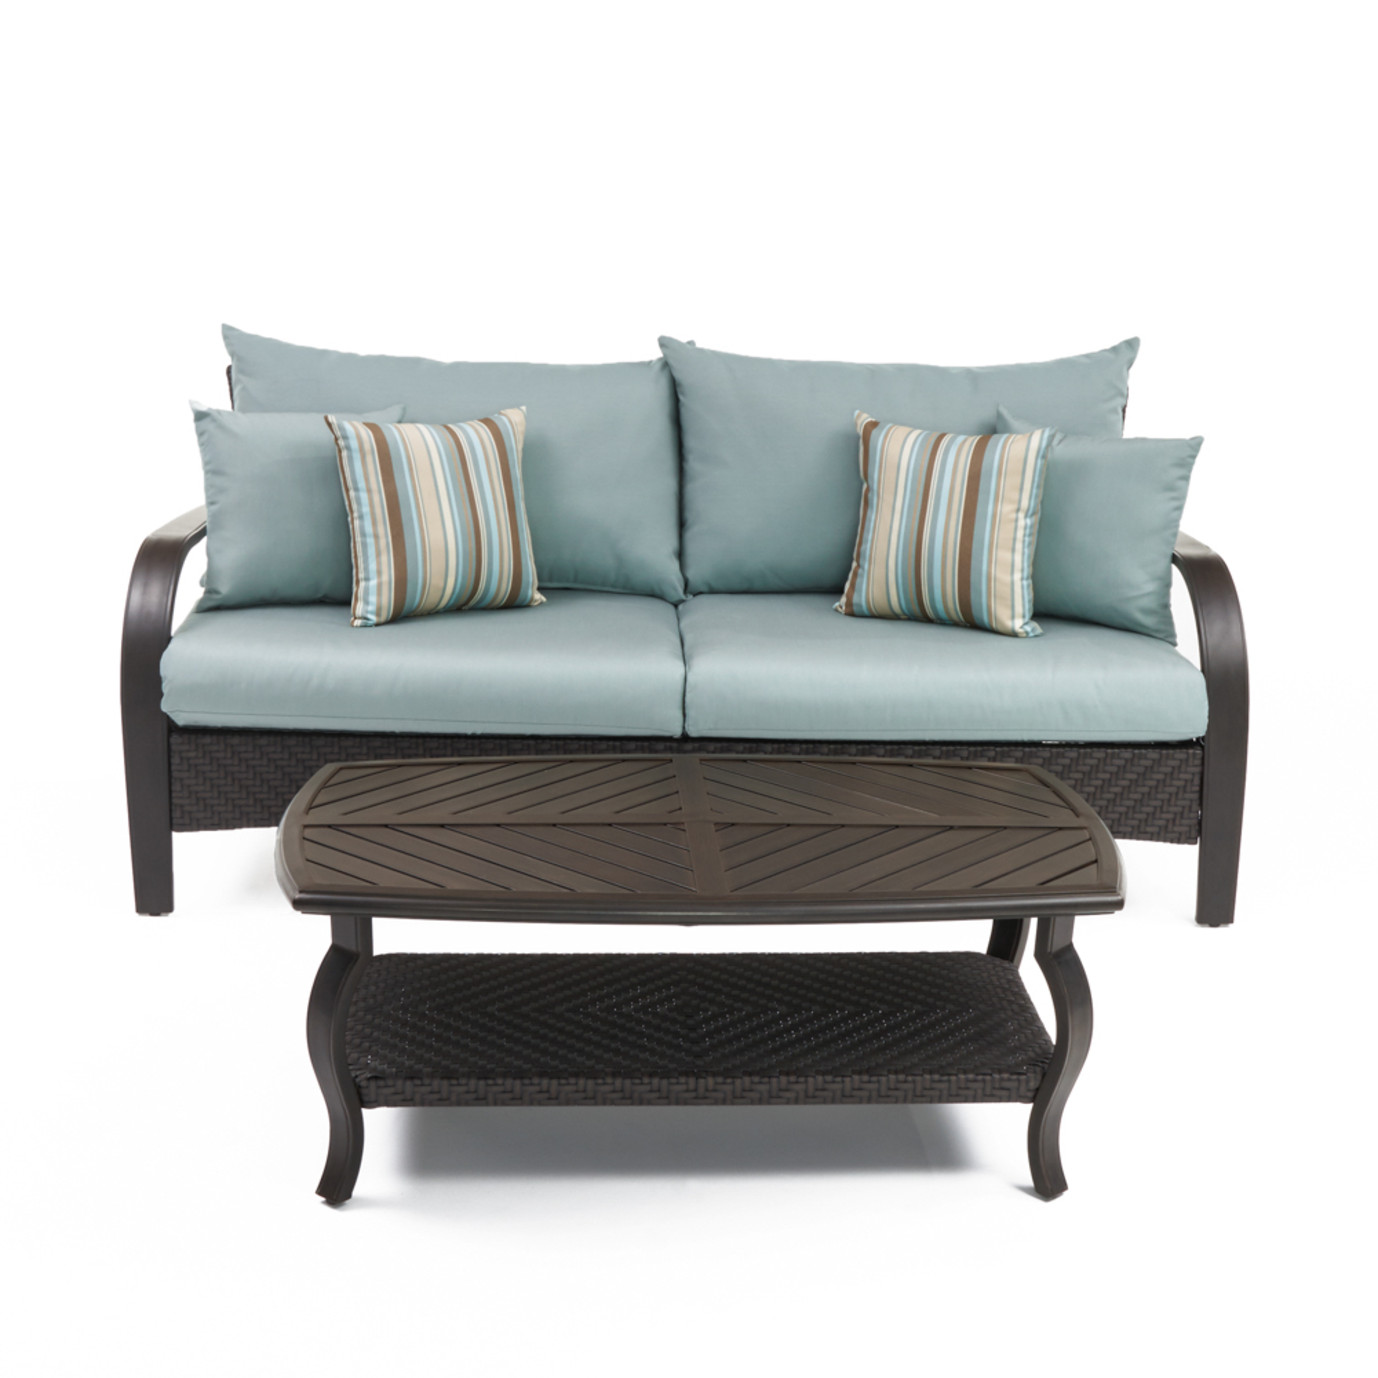 Barcelo™ Sofa & Coffee Table - Bliss Blue